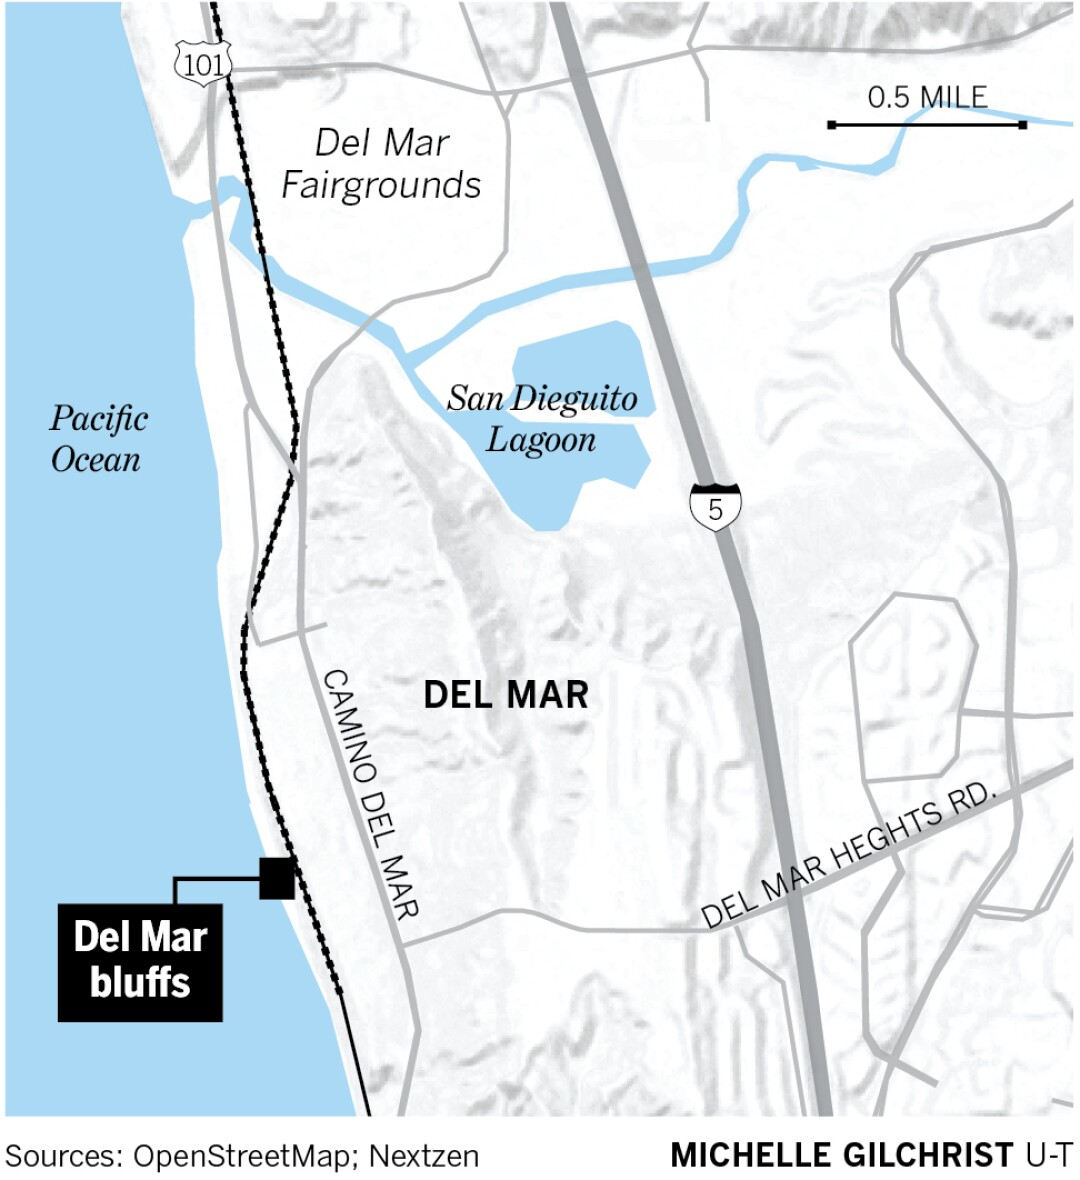 sd-id-g-del-mar-bluffs-locator-01.jpg